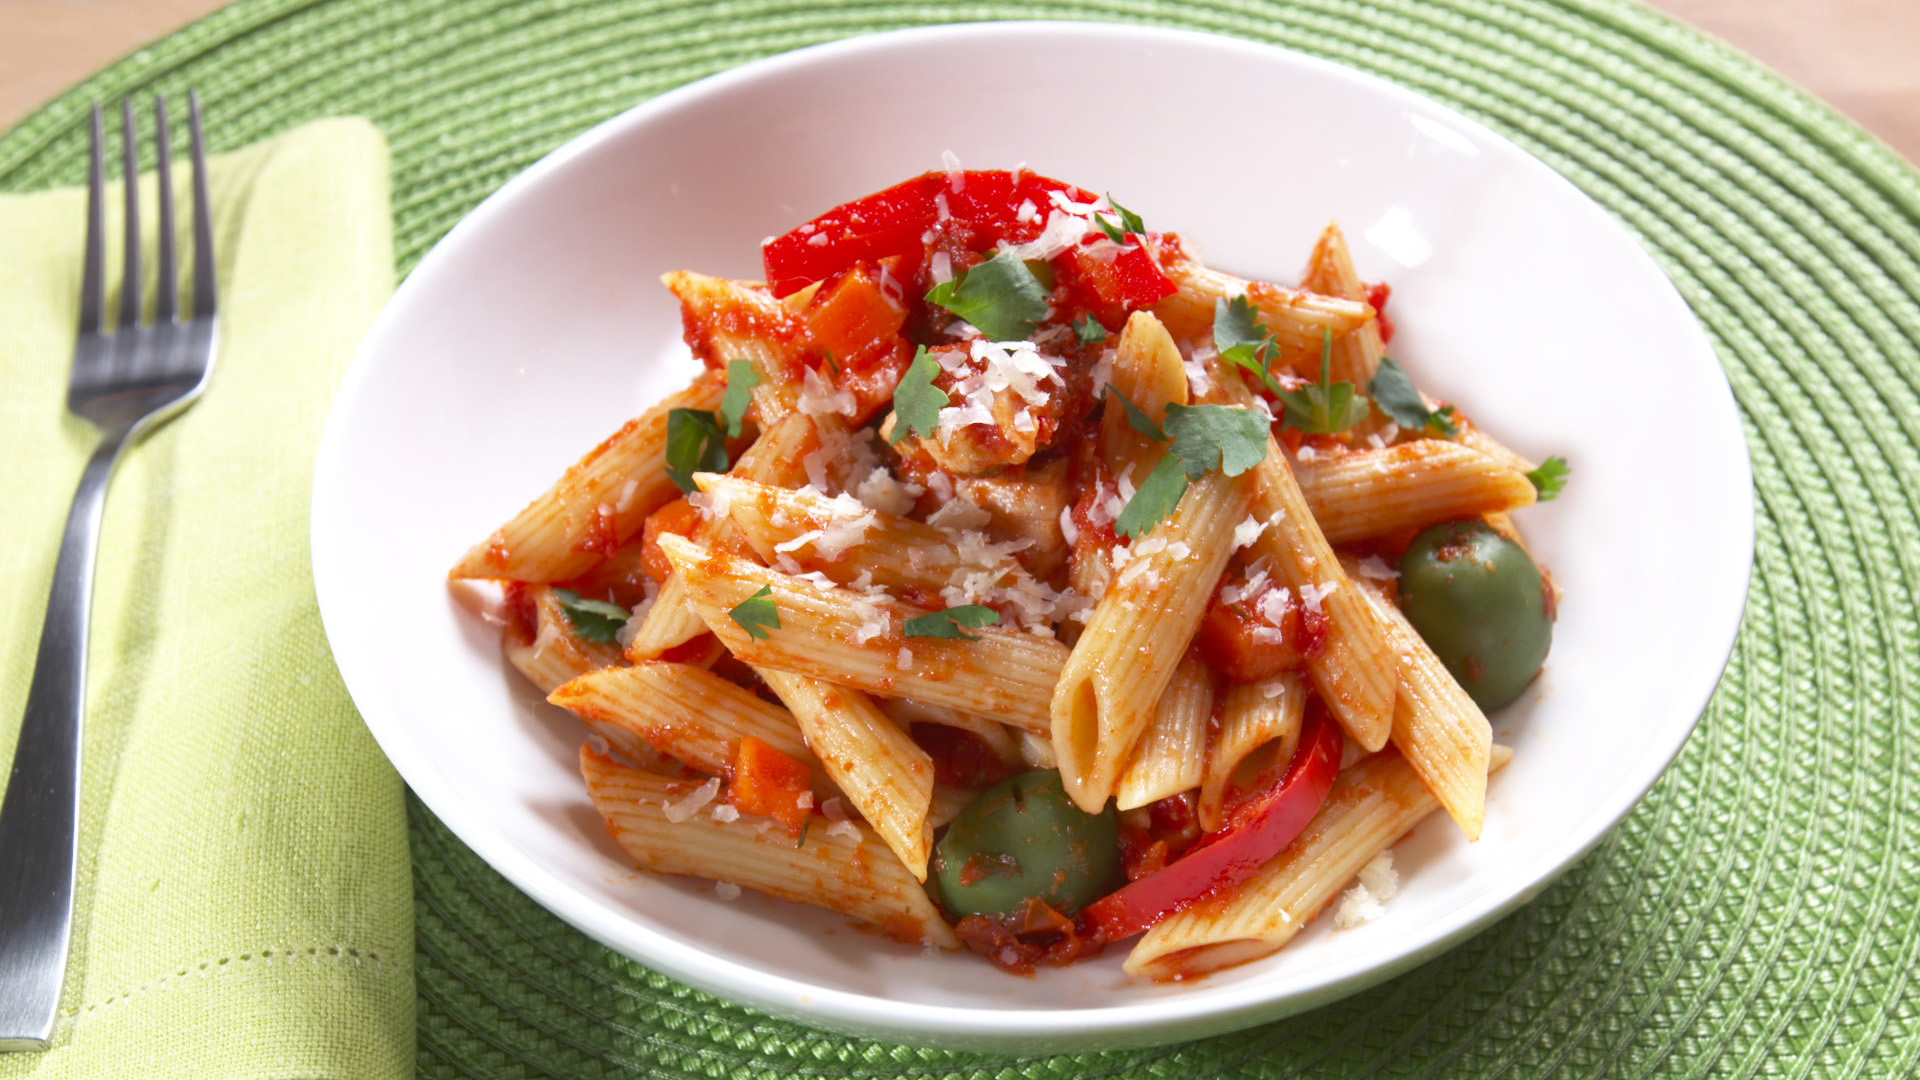 Ingrid Hoffmann creates the perfect Latino Italian Fusion dish with a creative take on arroz con pollo but made with Barilla penne pasta.